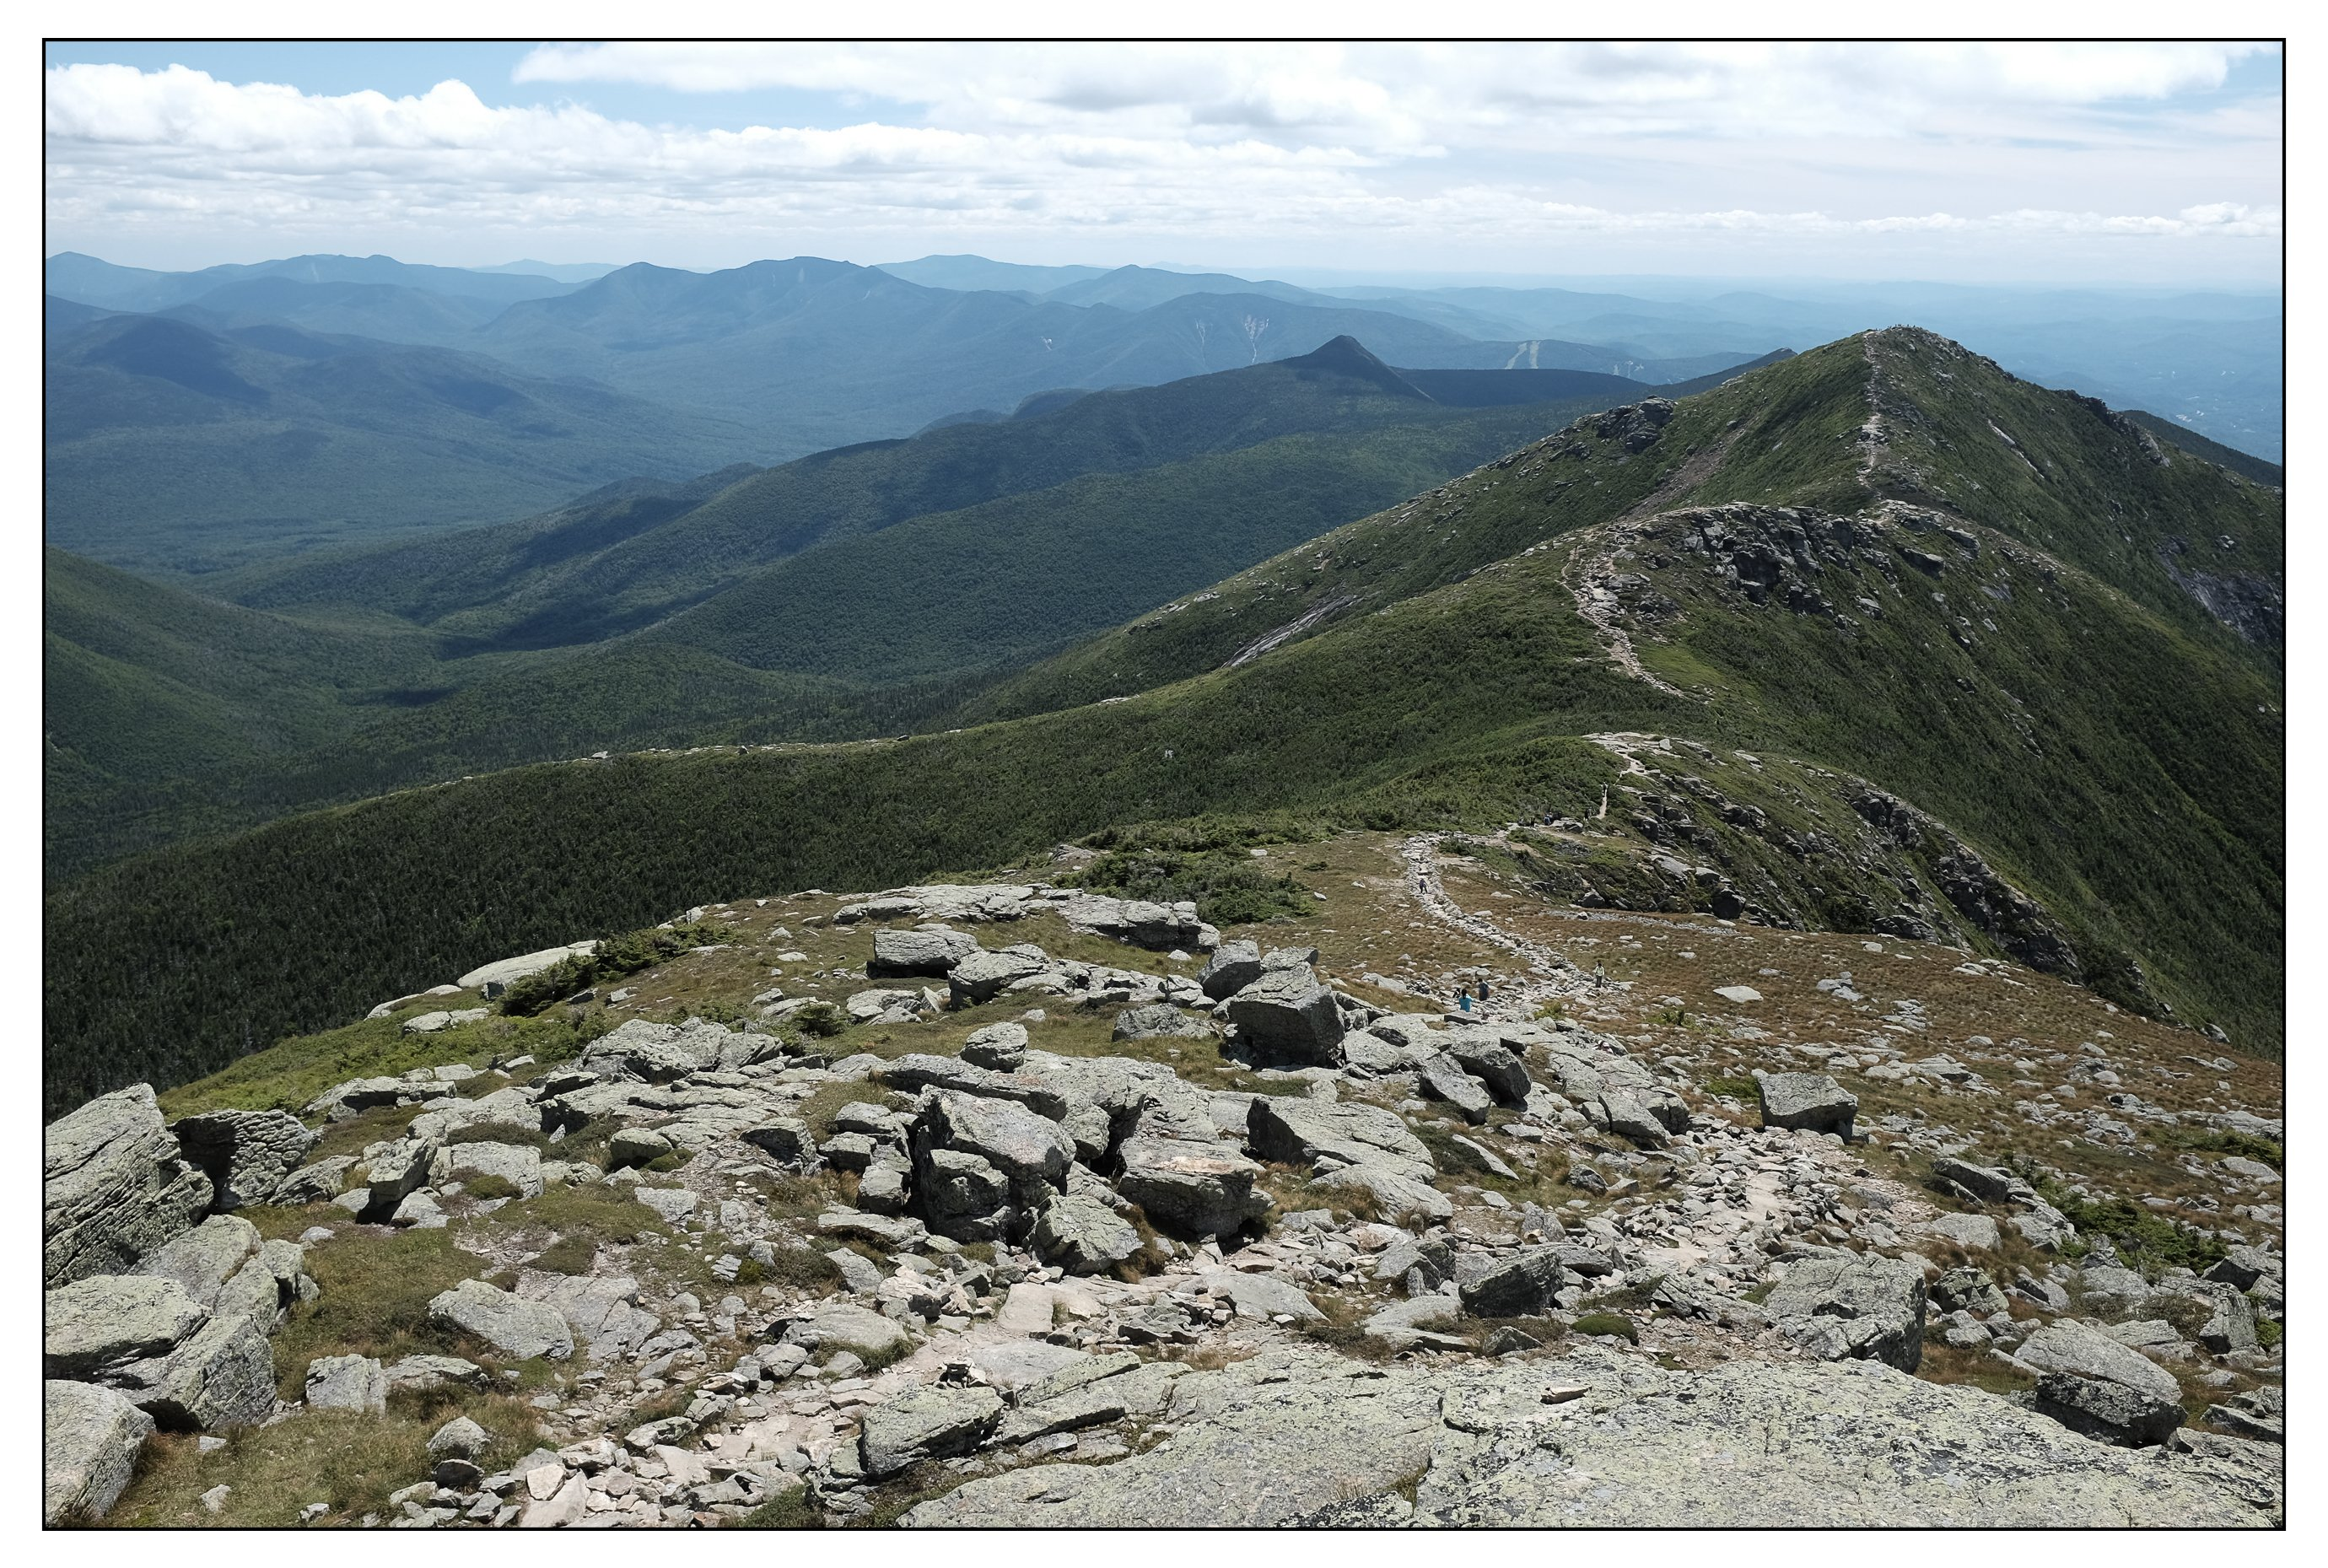 The view looking south along the Franconia Ridge from the summit of Mt. Lafayette.